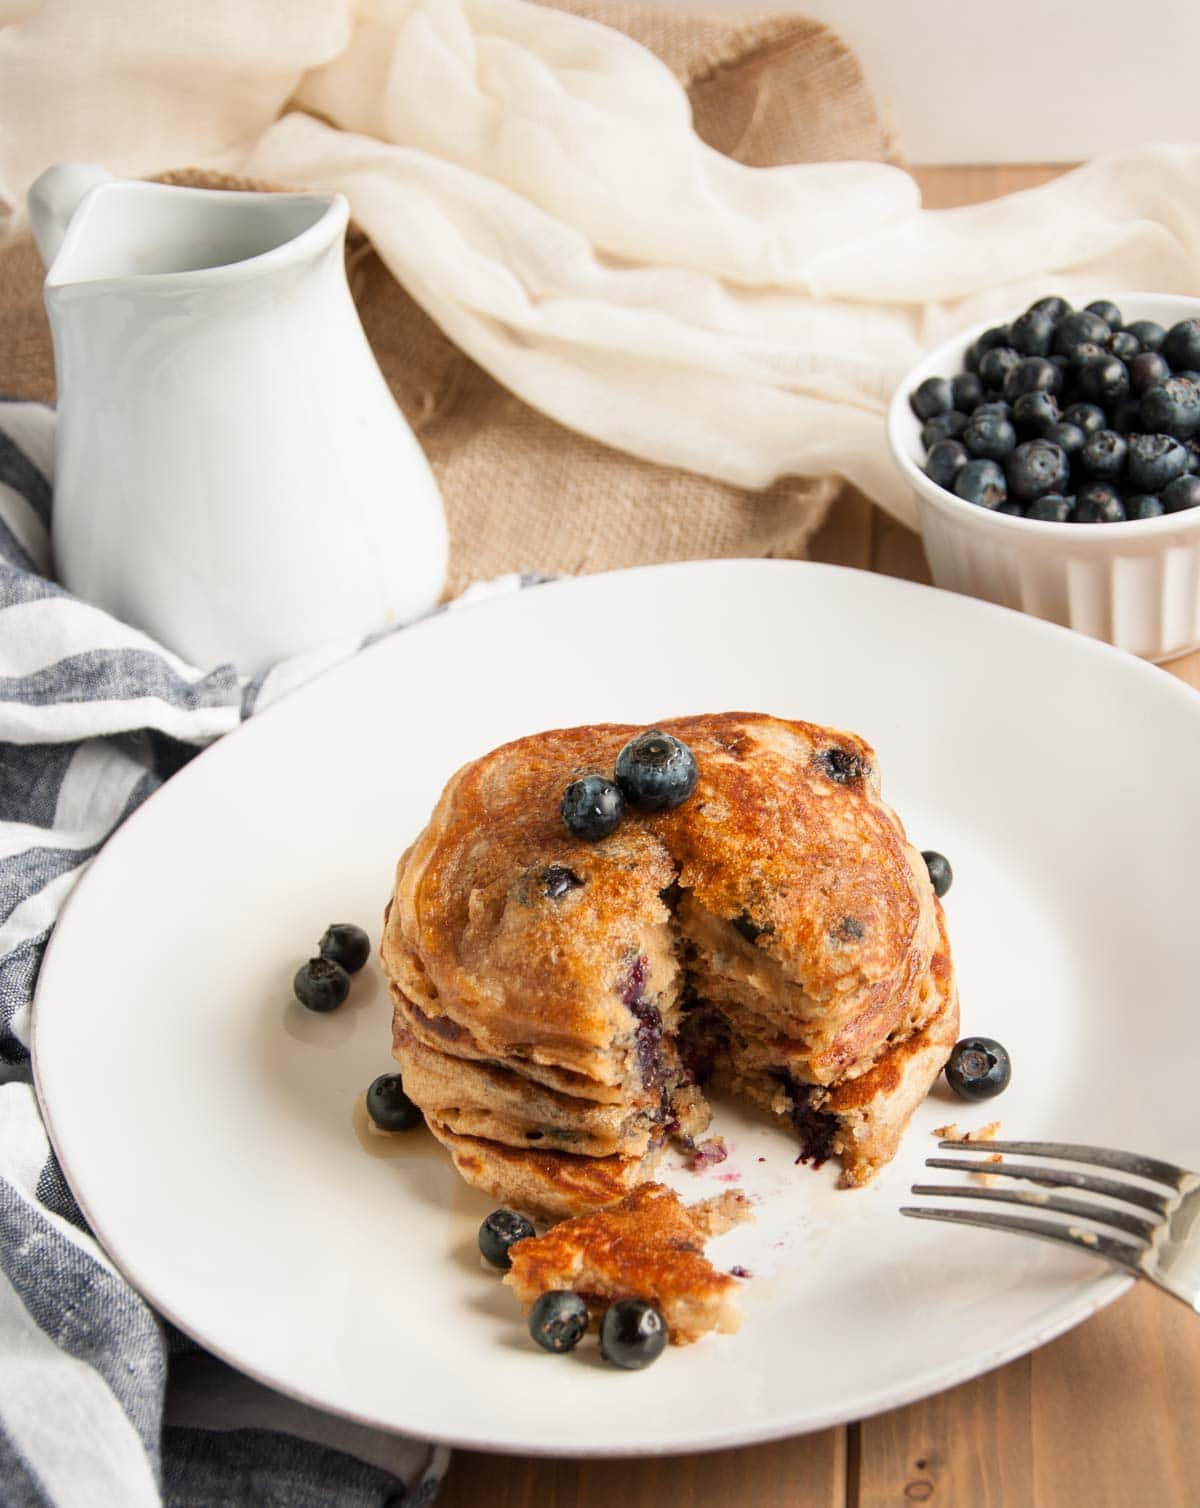 These thick, rich, delicious yogurt pancakes are a breakfast winner both in taste and nutrition, made with whole wheat flour, Greek yogurt, and blueberries.